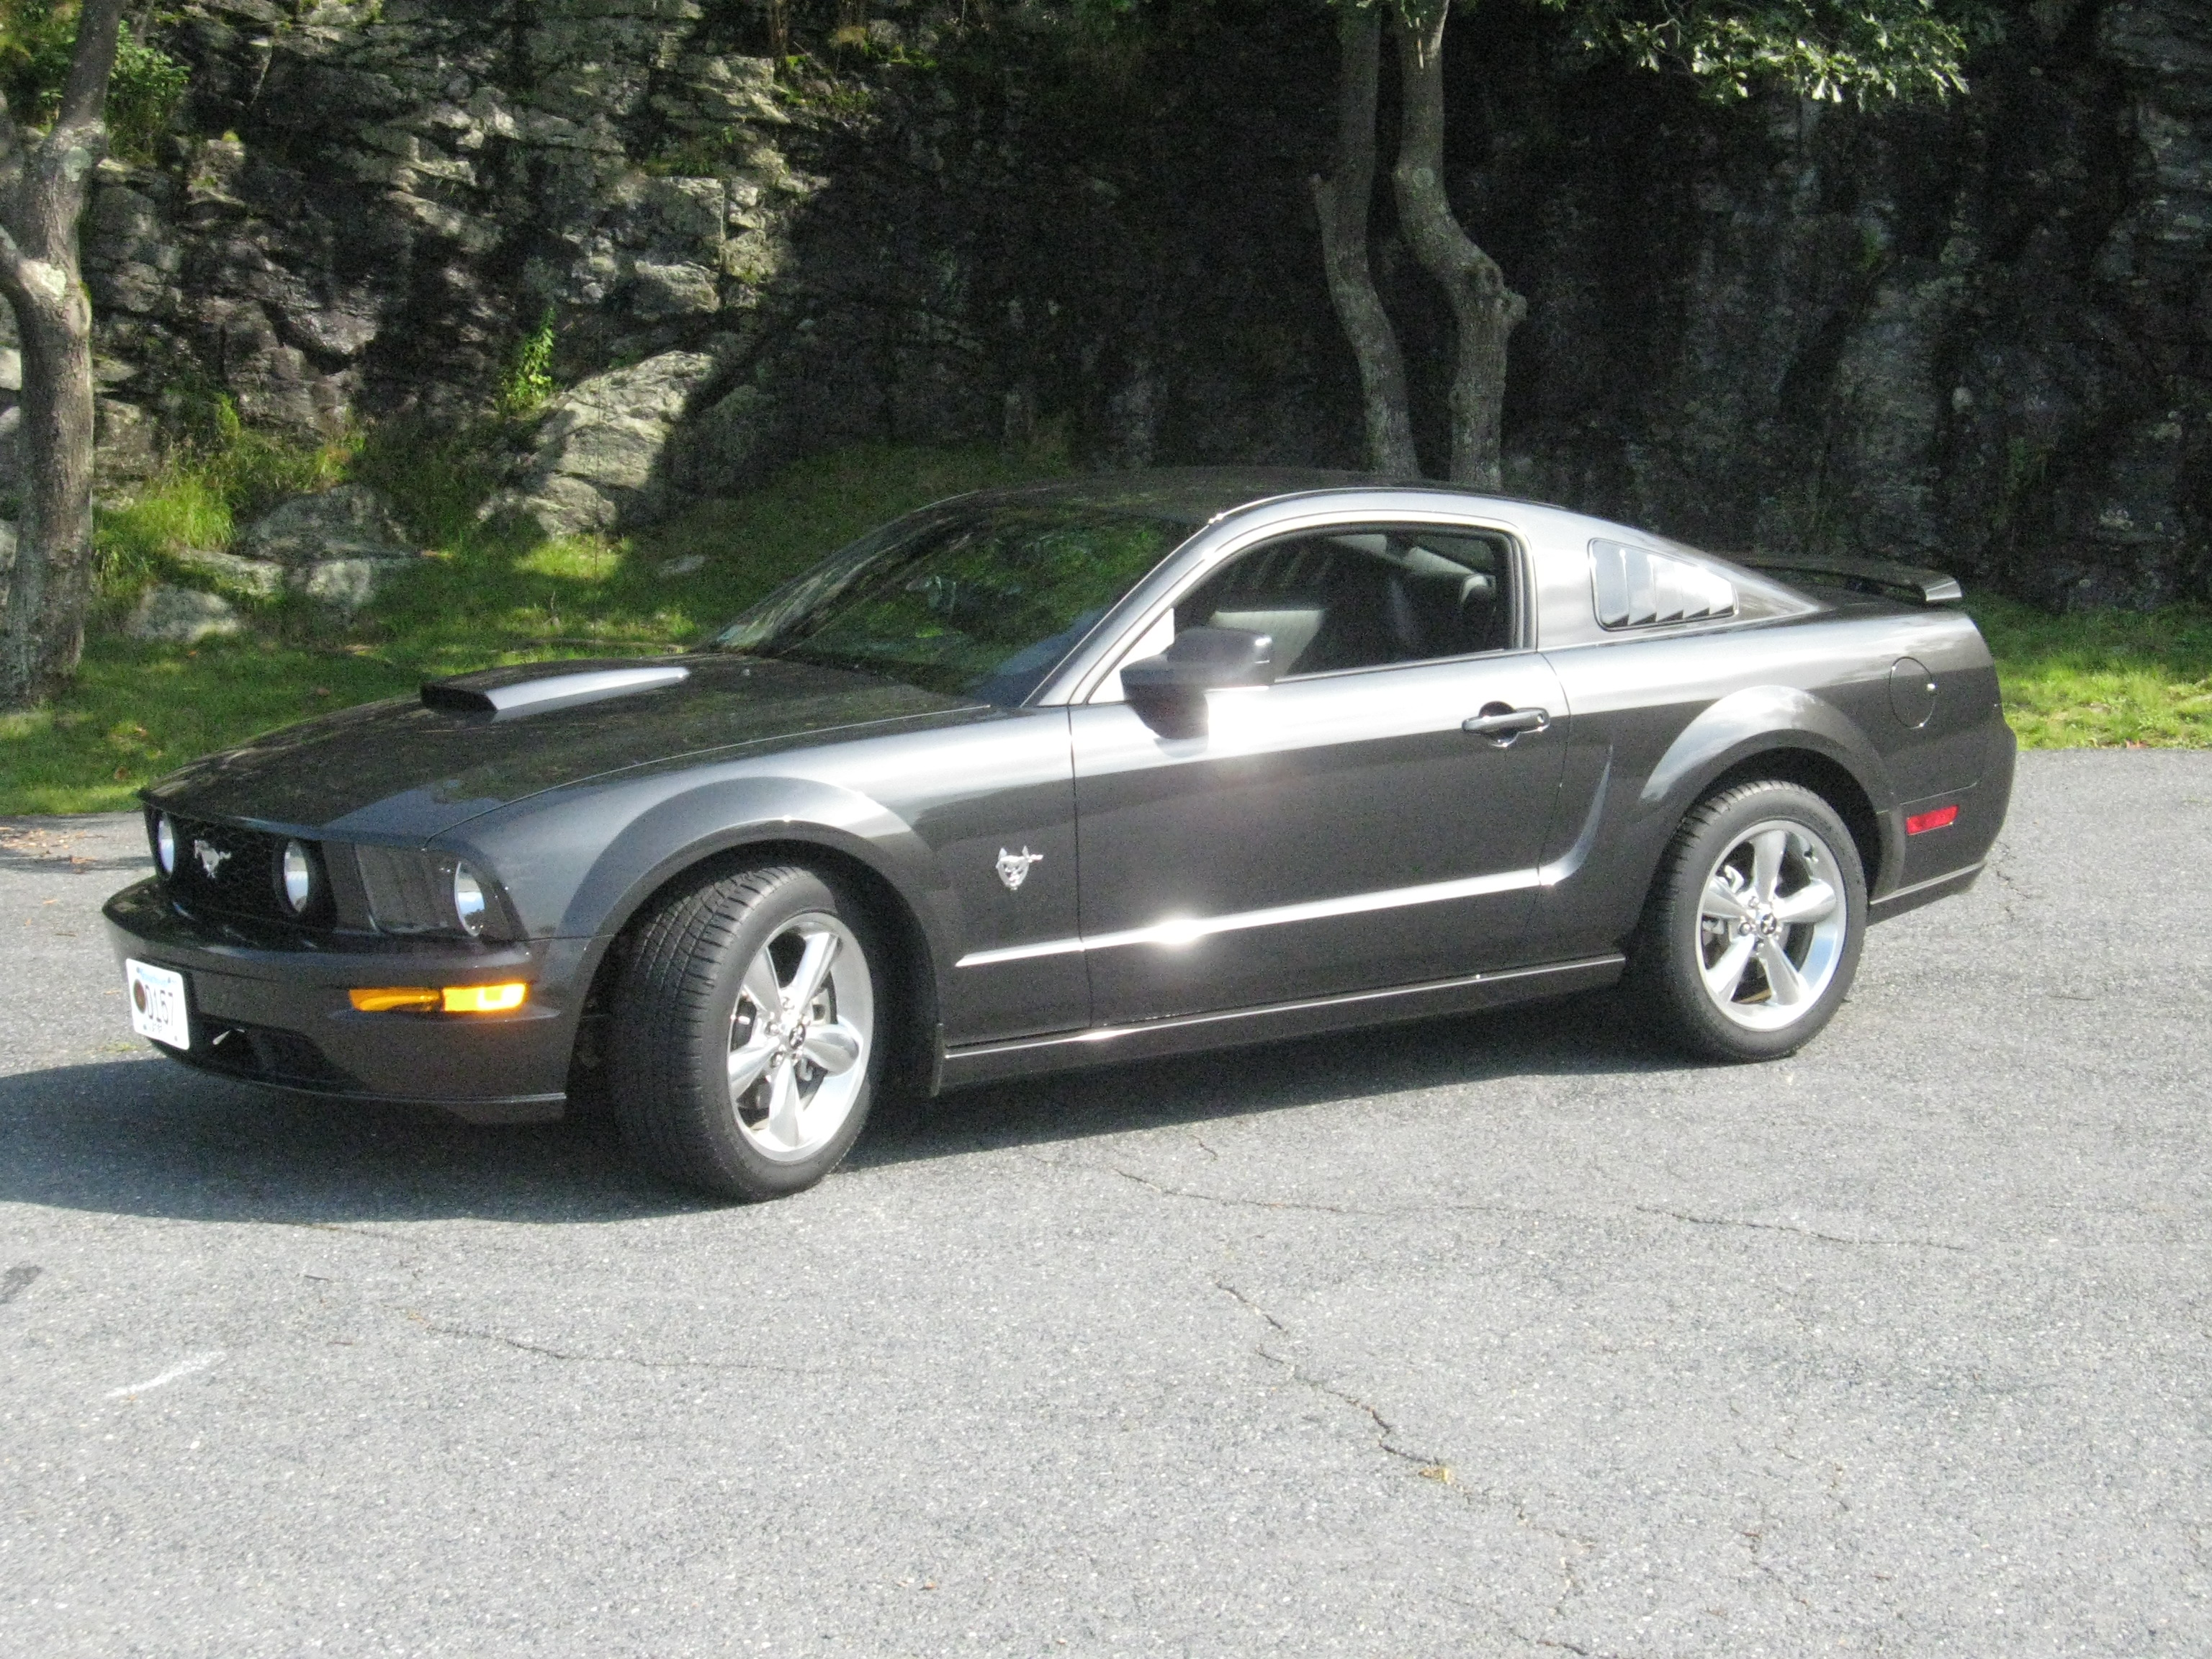 file 2009 ford mustang gt jpg wikipedia. Black Bedroom Furniture Sets. Home Design Ideas